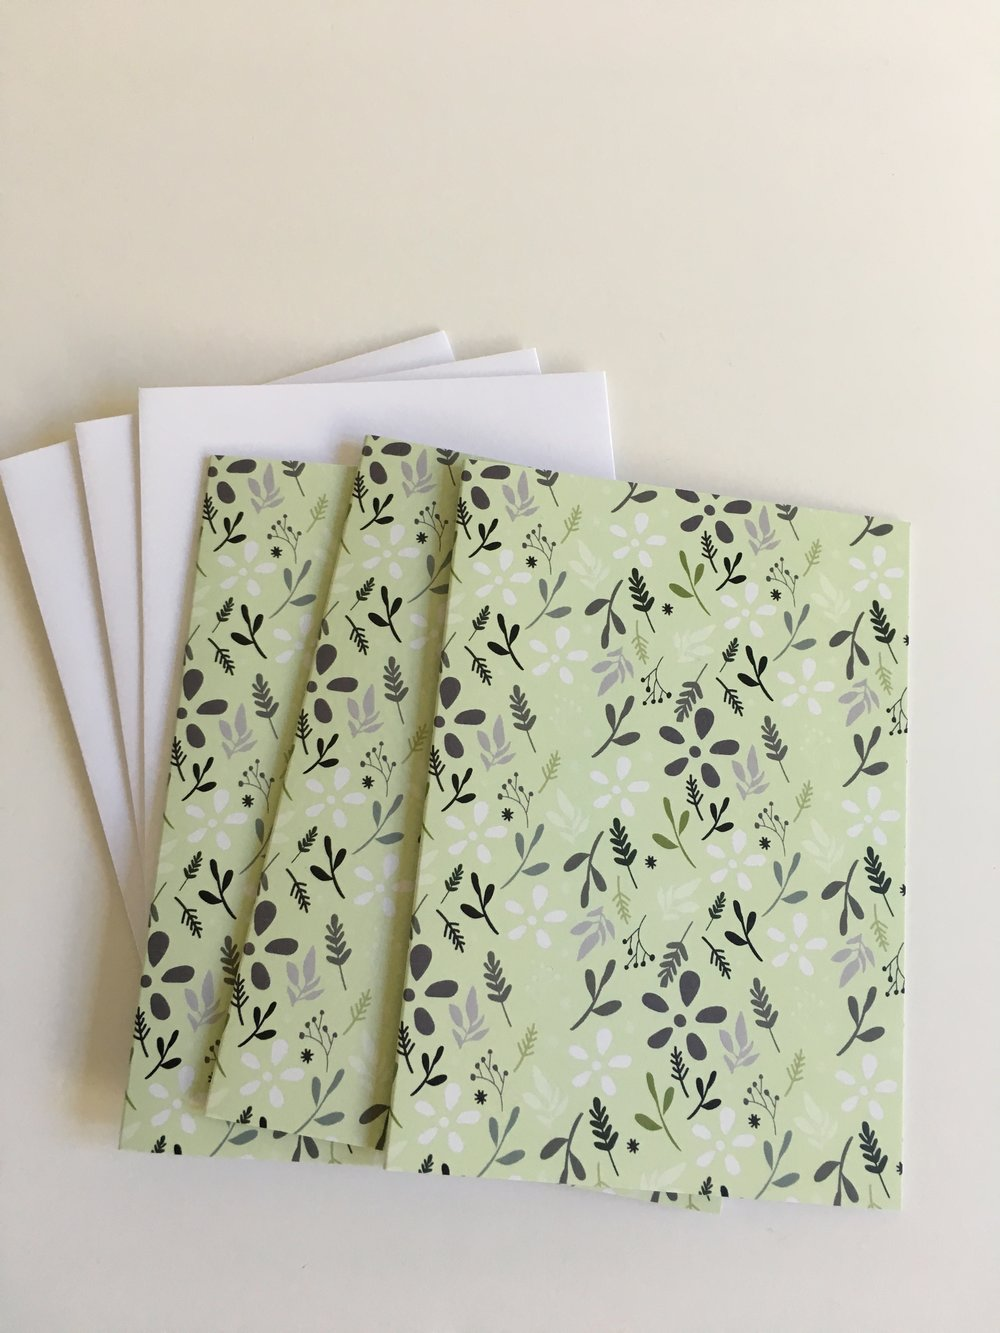 Light green tossed floral patterned cards